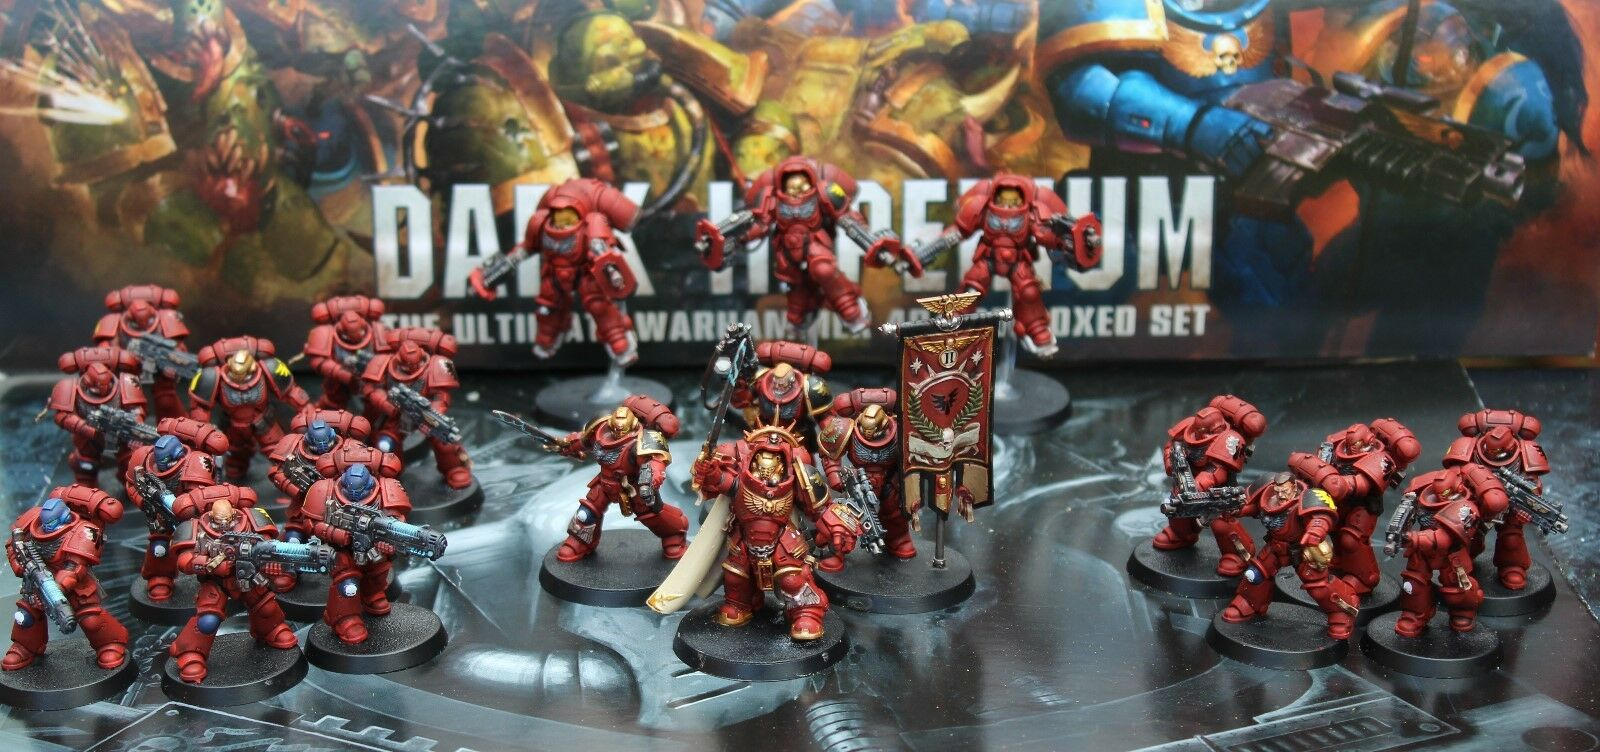 Primaris space marines army Blood angels  Pro painted made to order